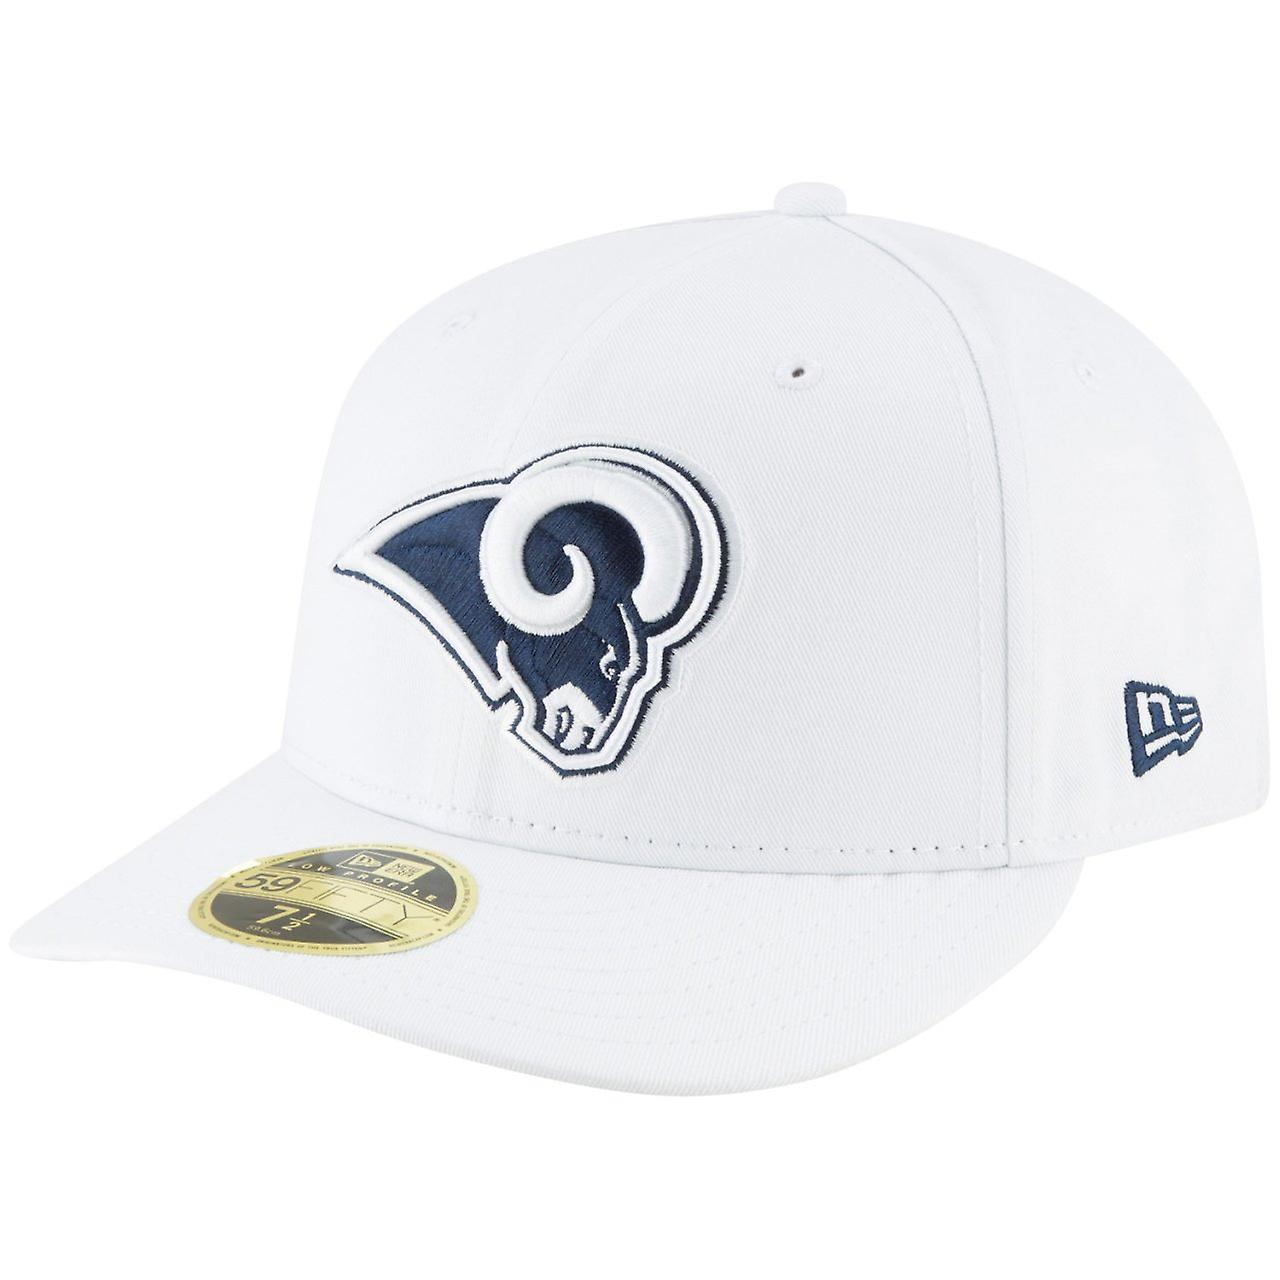 New Era 59Fifty LOW PROFILE Cap - Los Angeles Rams